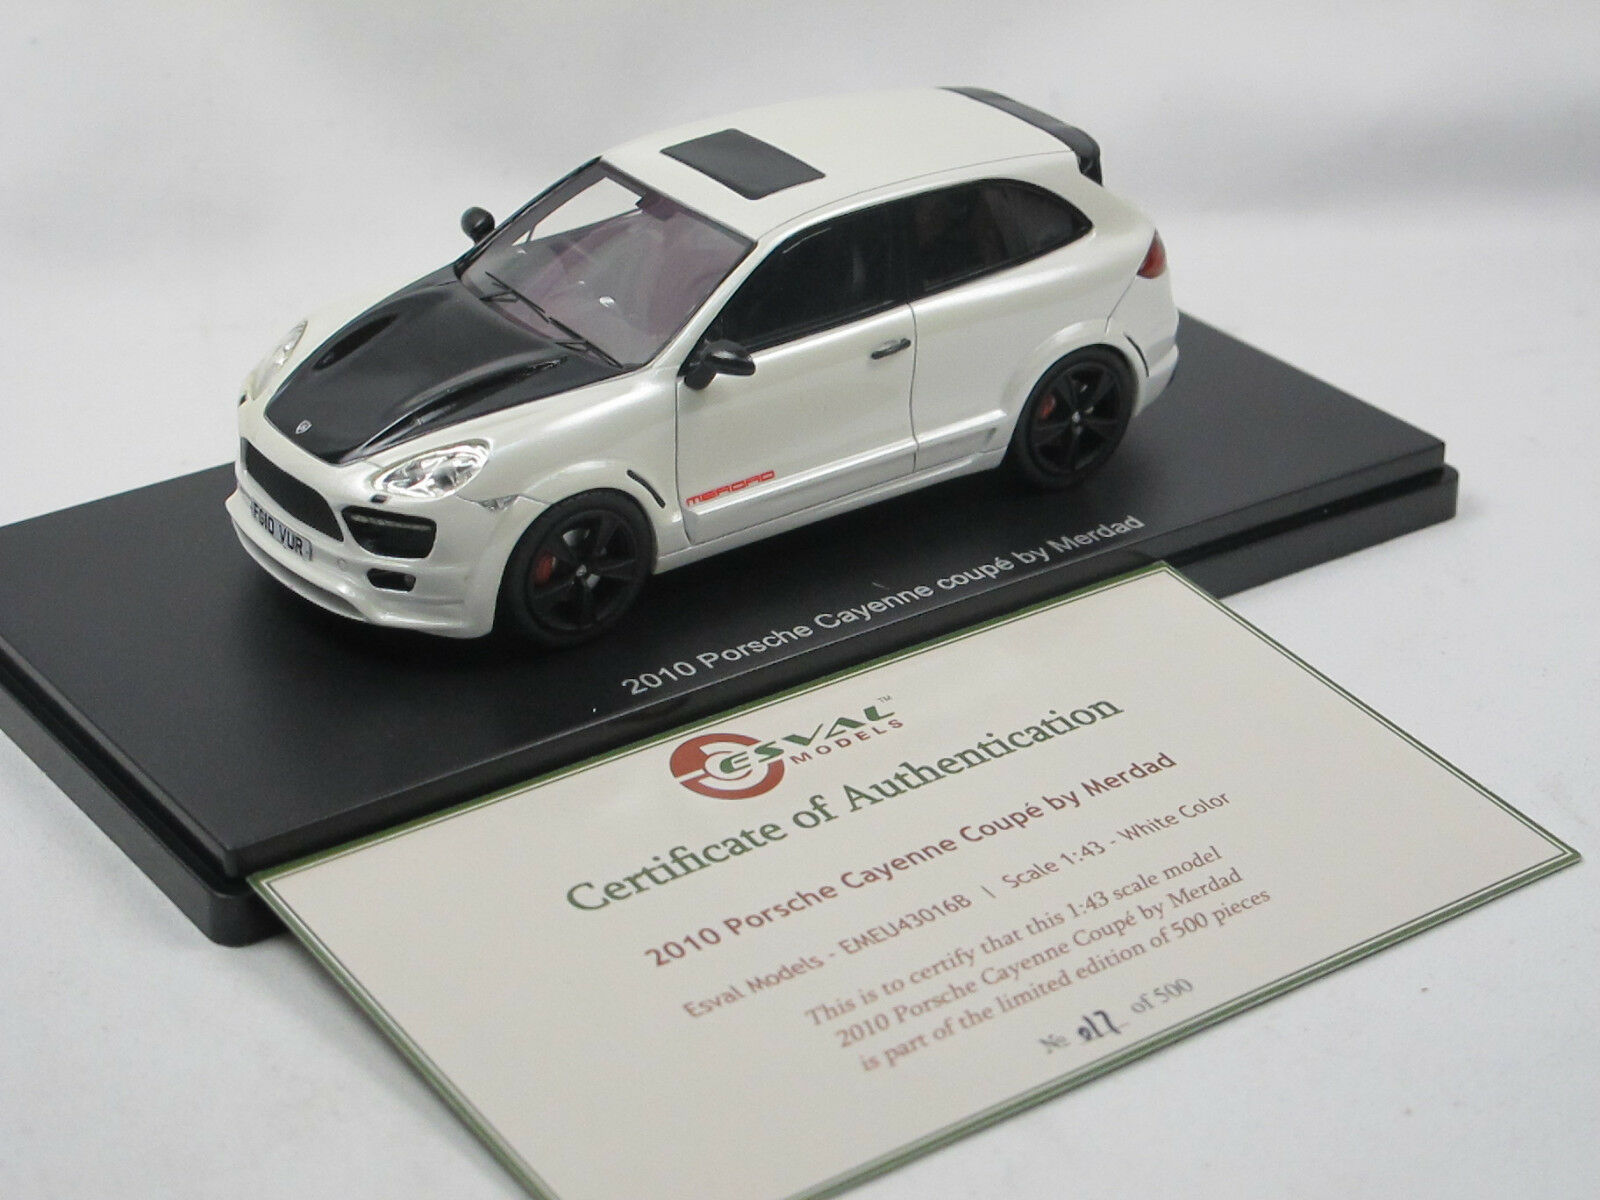 ESVAL MODELS 2010 PORSCHE CAYENNE 2-Door merdad Coupe blanc Limited Edition 1 43